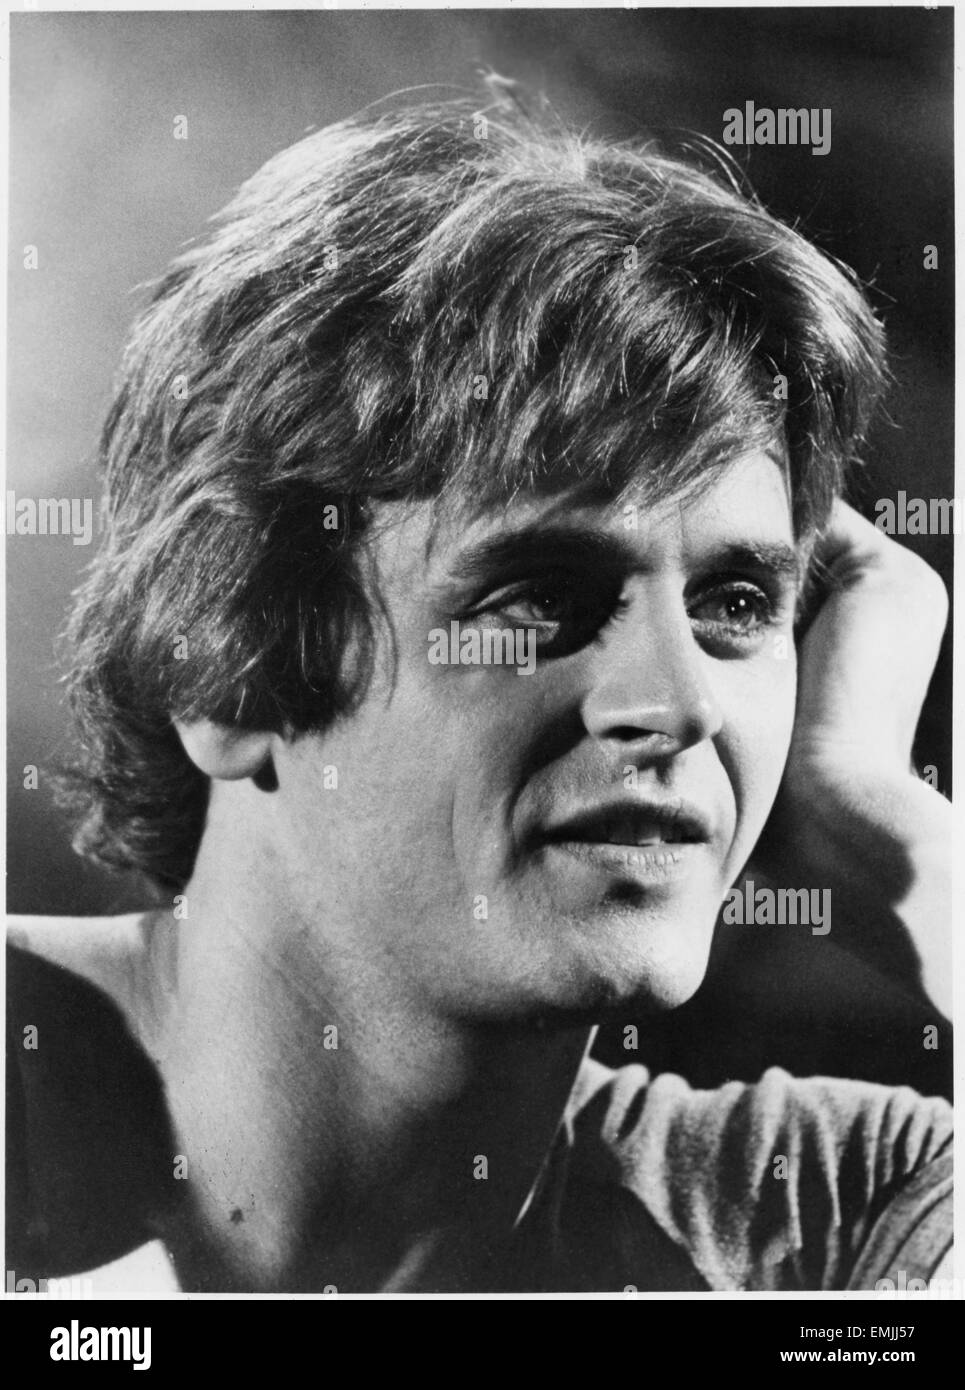 Mikhail Baryshnikov, Portrait, on-set of the Film 'The Turning Point', 1977 - Stock Image